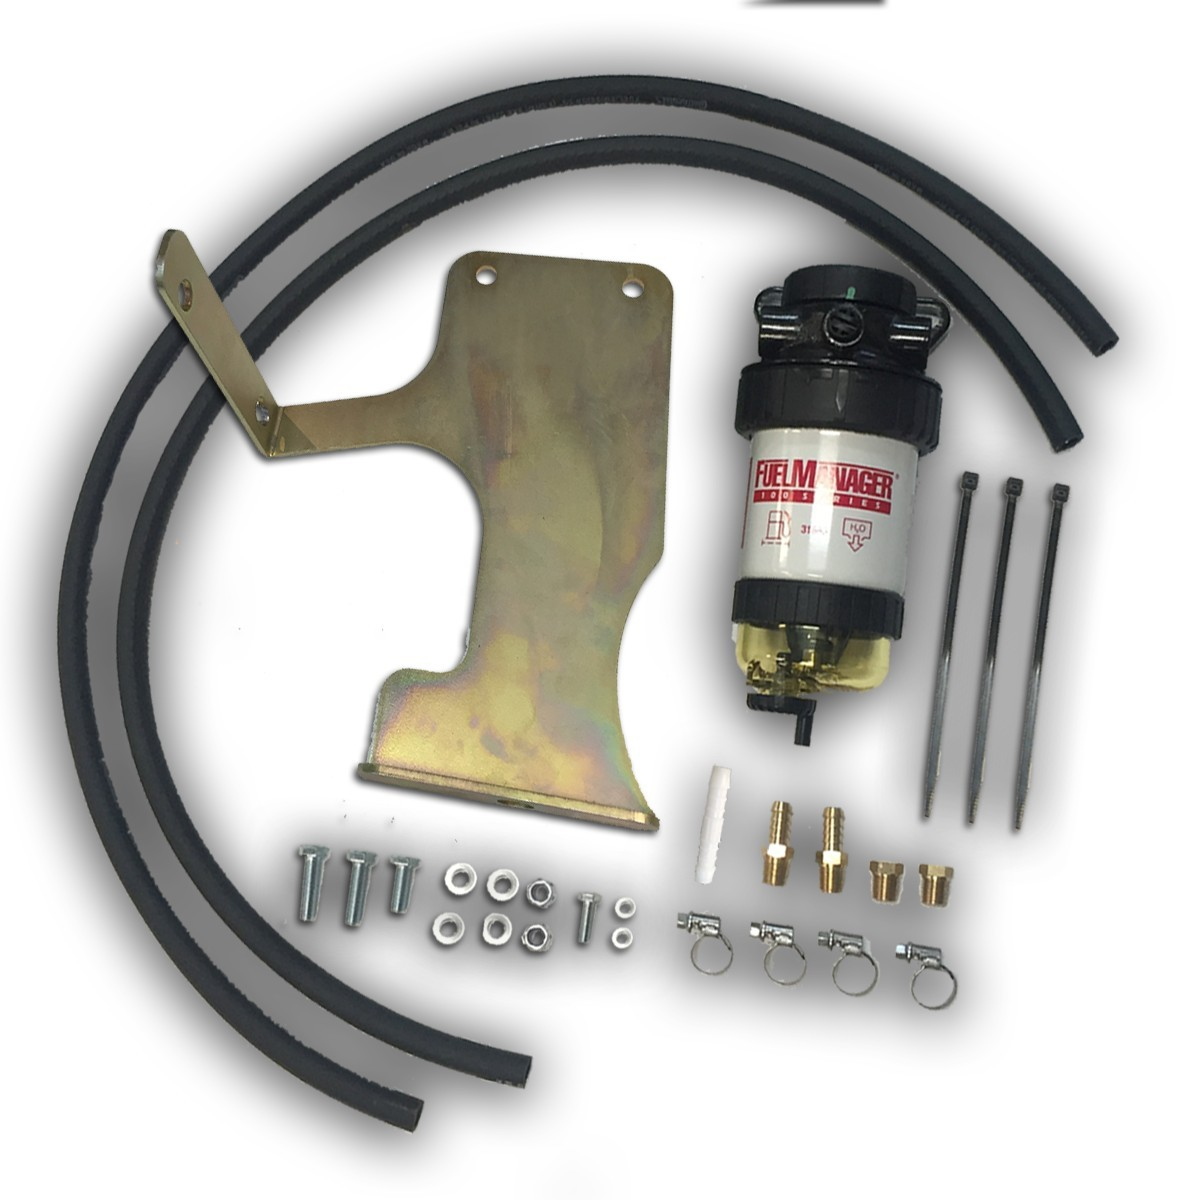 Toyota Landcruiser 200 Series Primary (PRE) Fuel Filter Kit